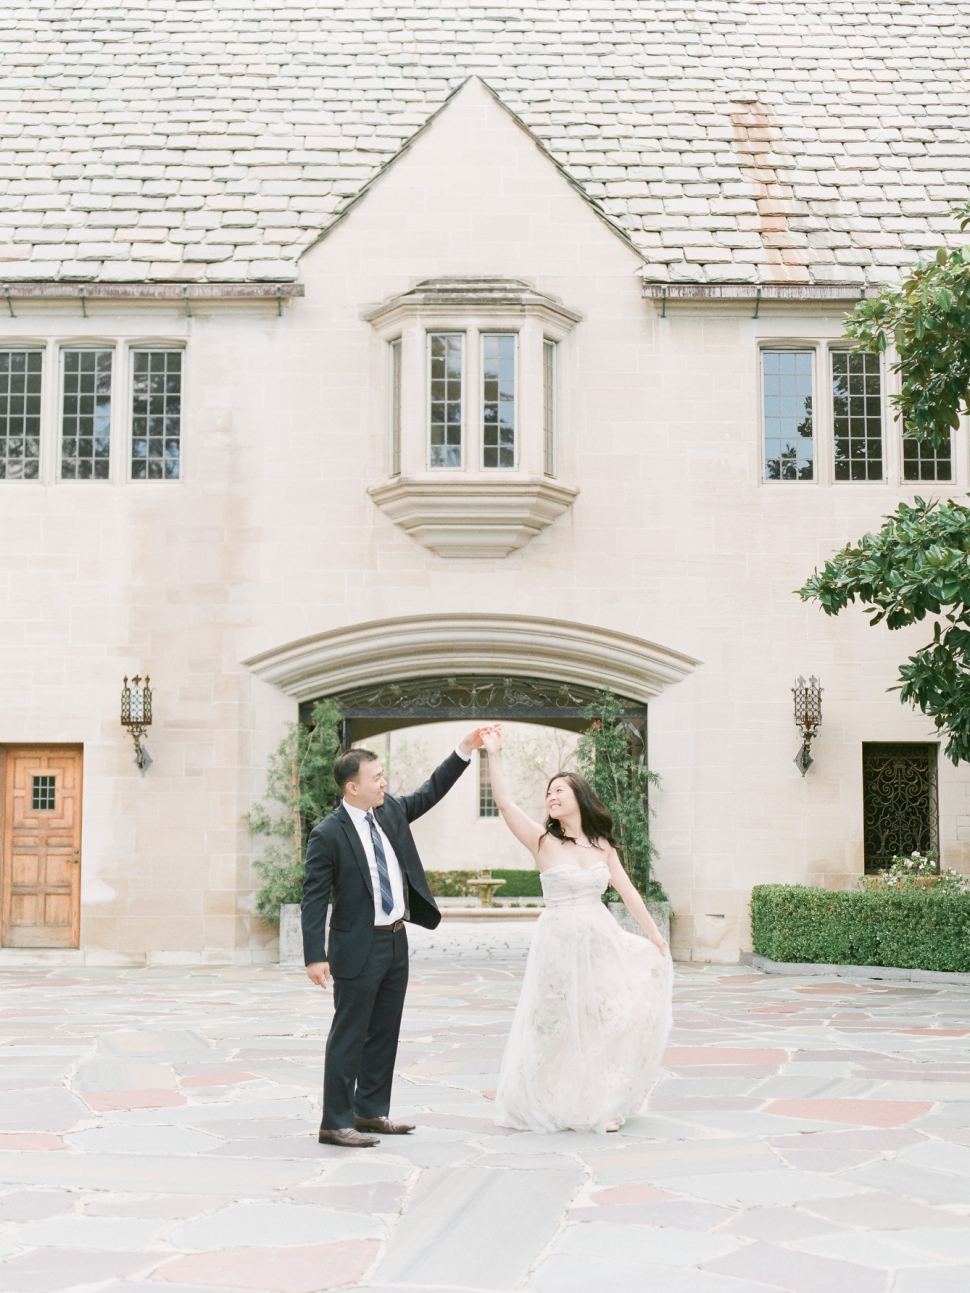 Greystone Mansion Wedding Photographer Beverly Hills California New Jersey Wedding Photographer With A Romantic Joyful And Airy Style